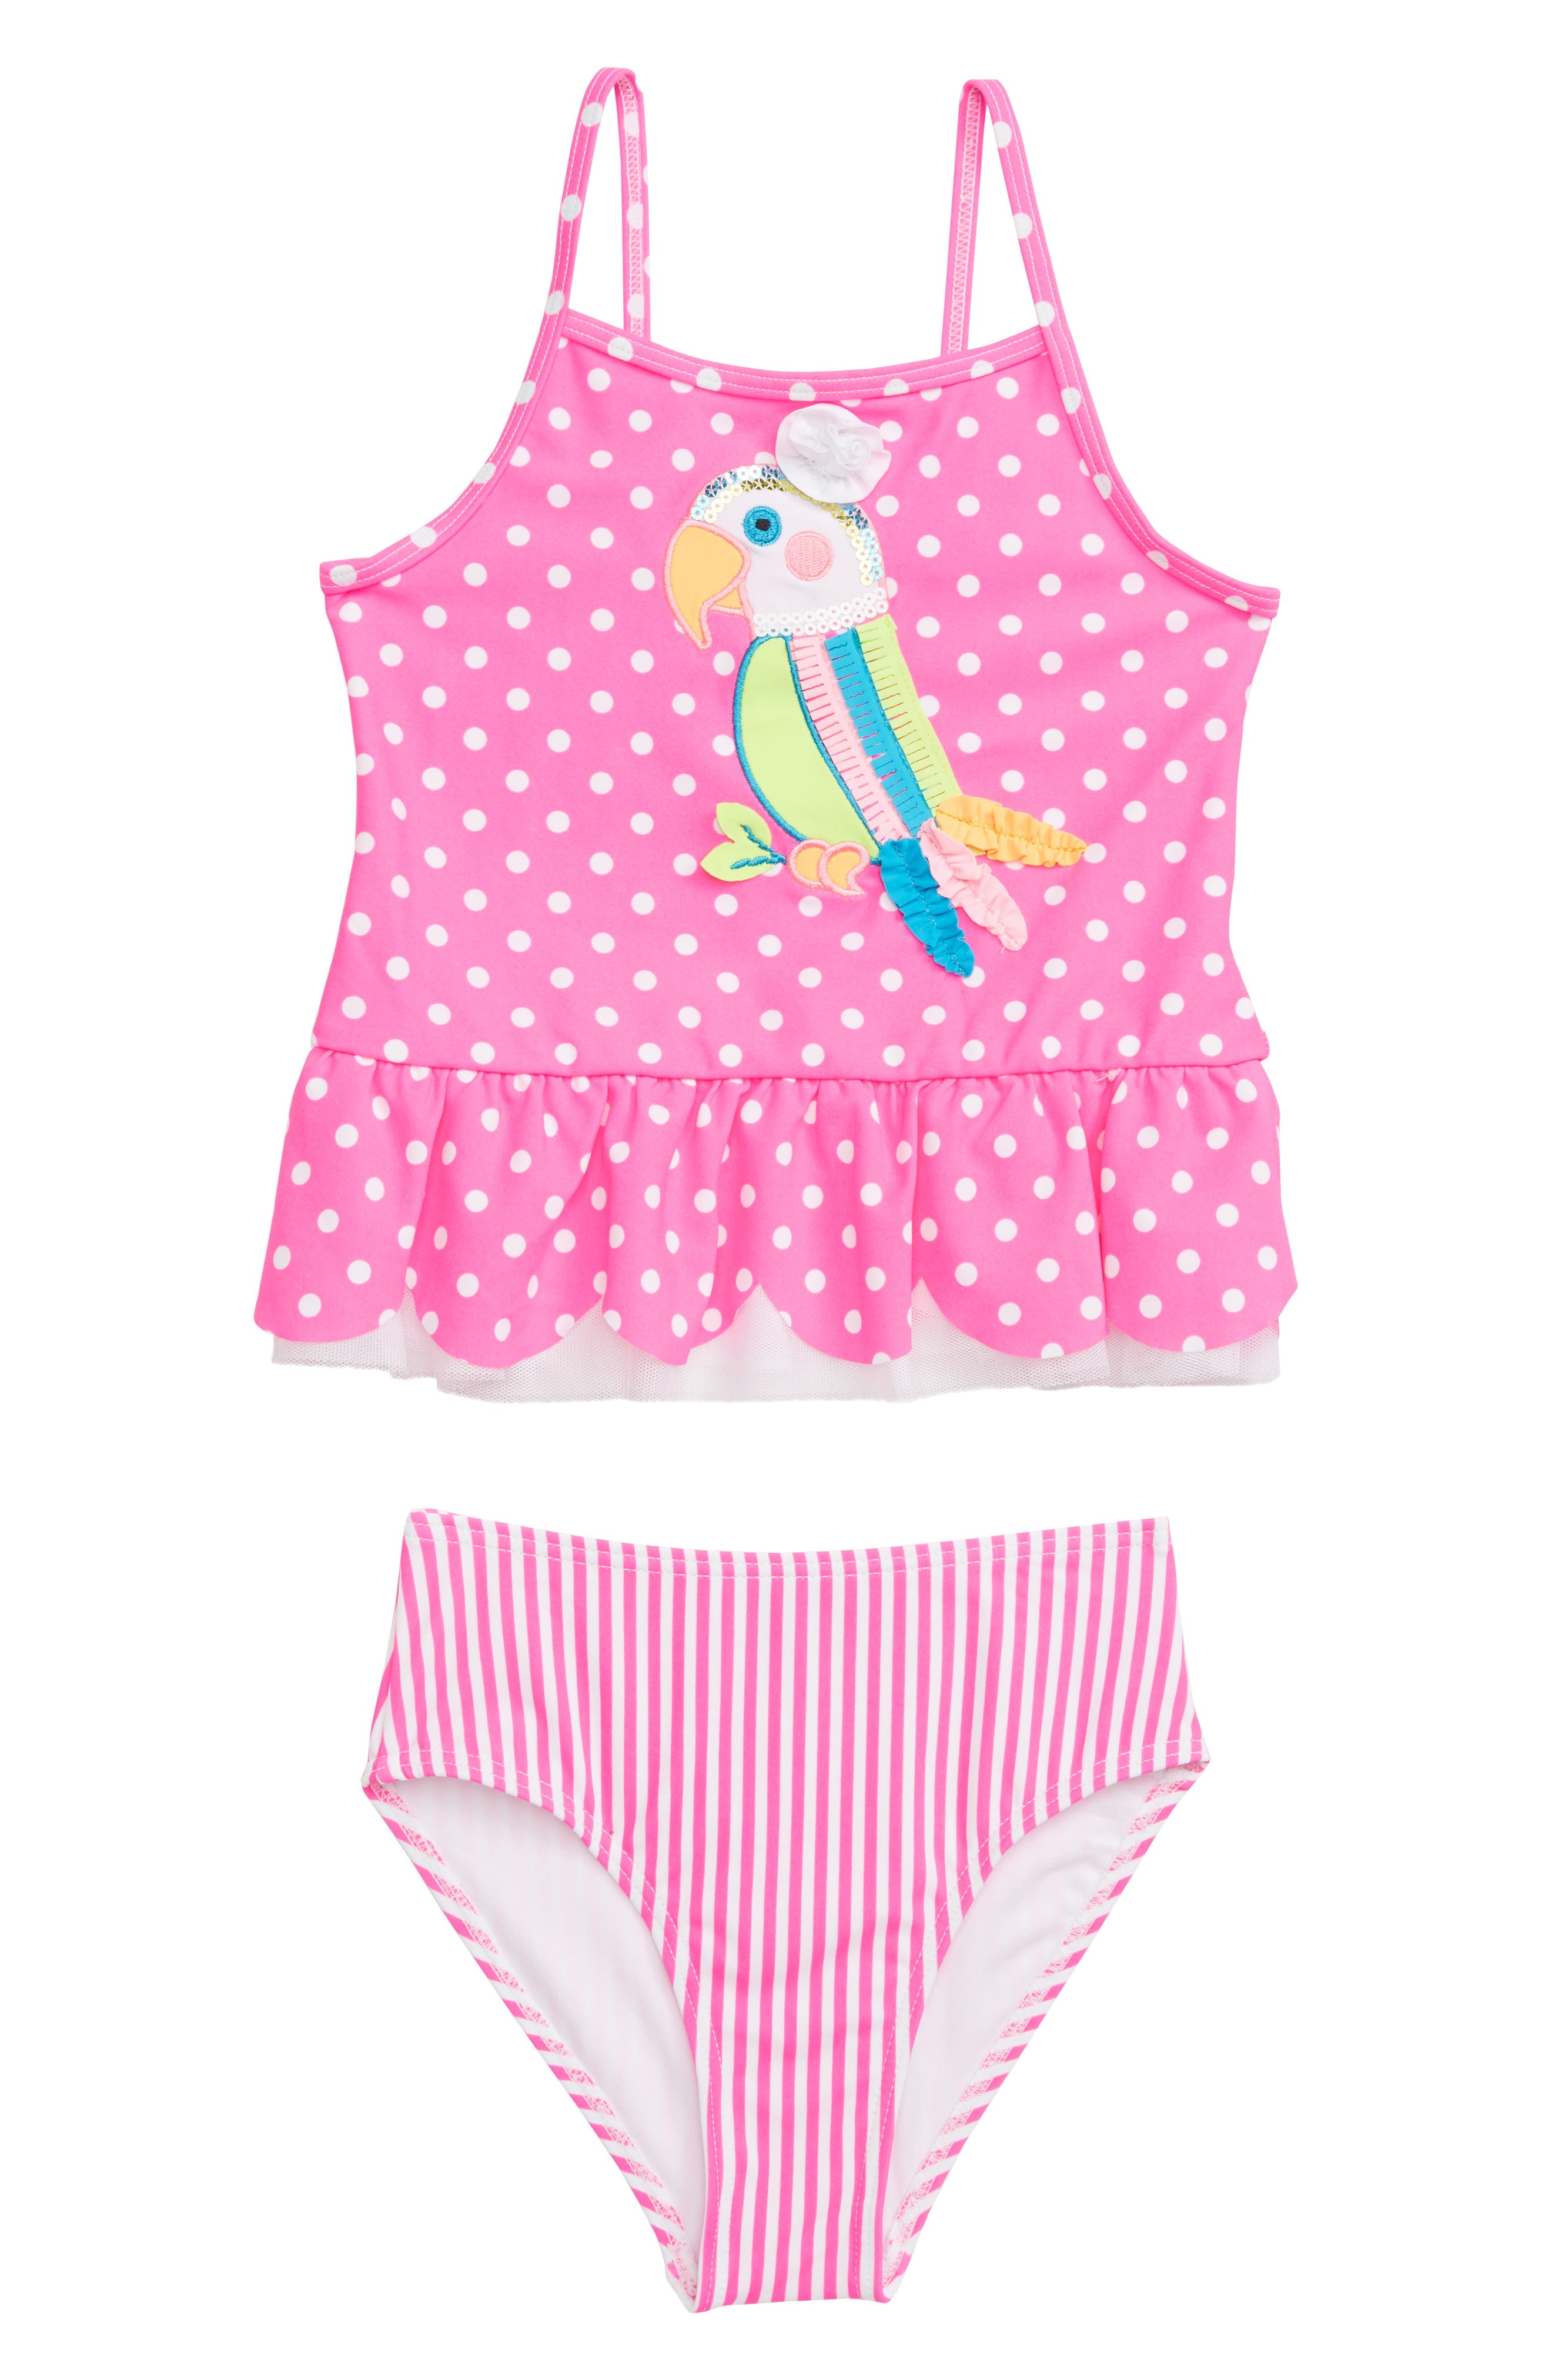 Girls Flapdoodles Parrot Applique Polka Dot Tankini TwoPiece Swimsuit Size 5  Pink